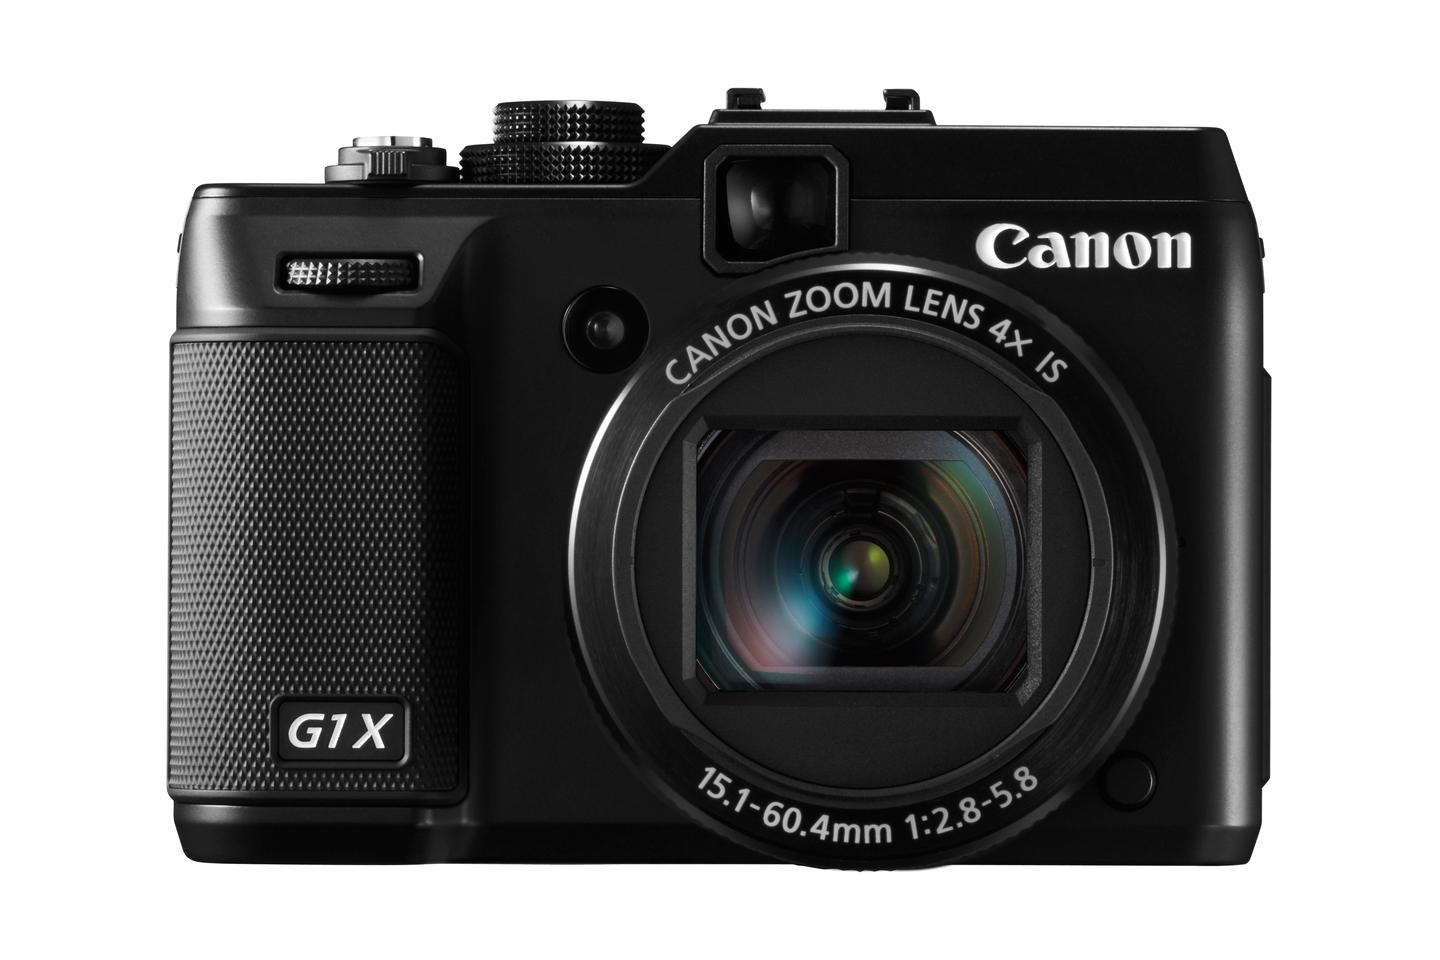 The Canon G1 X boasts a 1.5-inch, 14.3-megapixel CMOS sensor with over six times the area of previous G-series models